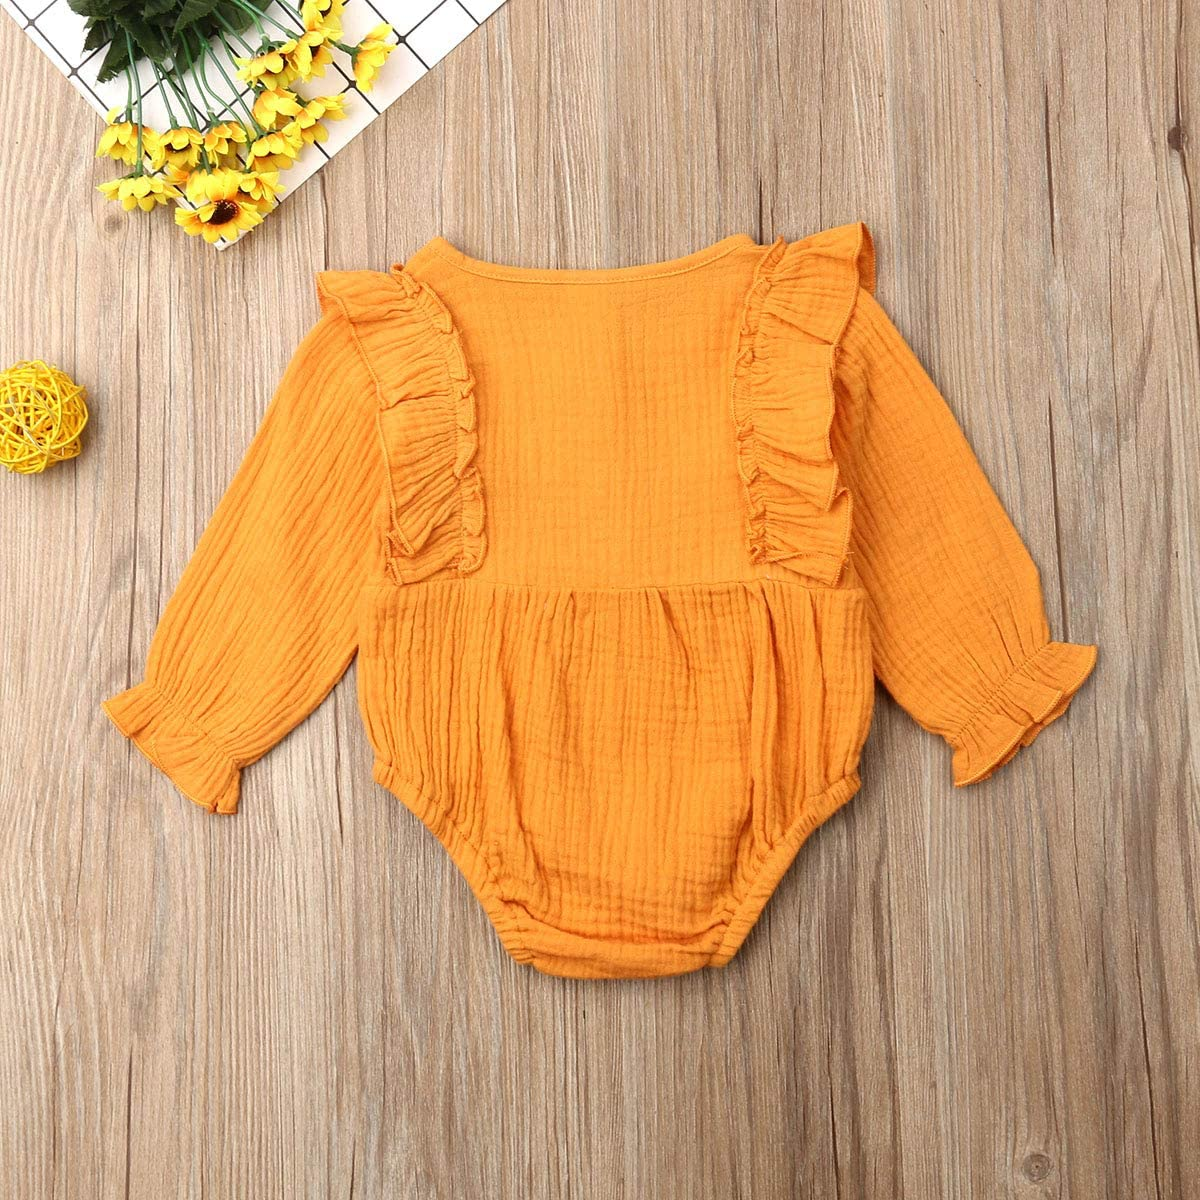 LddcryMbb Newborn Infant Fall Outfits Baby Girls Long Sleeve Solid Color Romper One-Size Bodysuit Jumpsuit 0-24Months Clothes